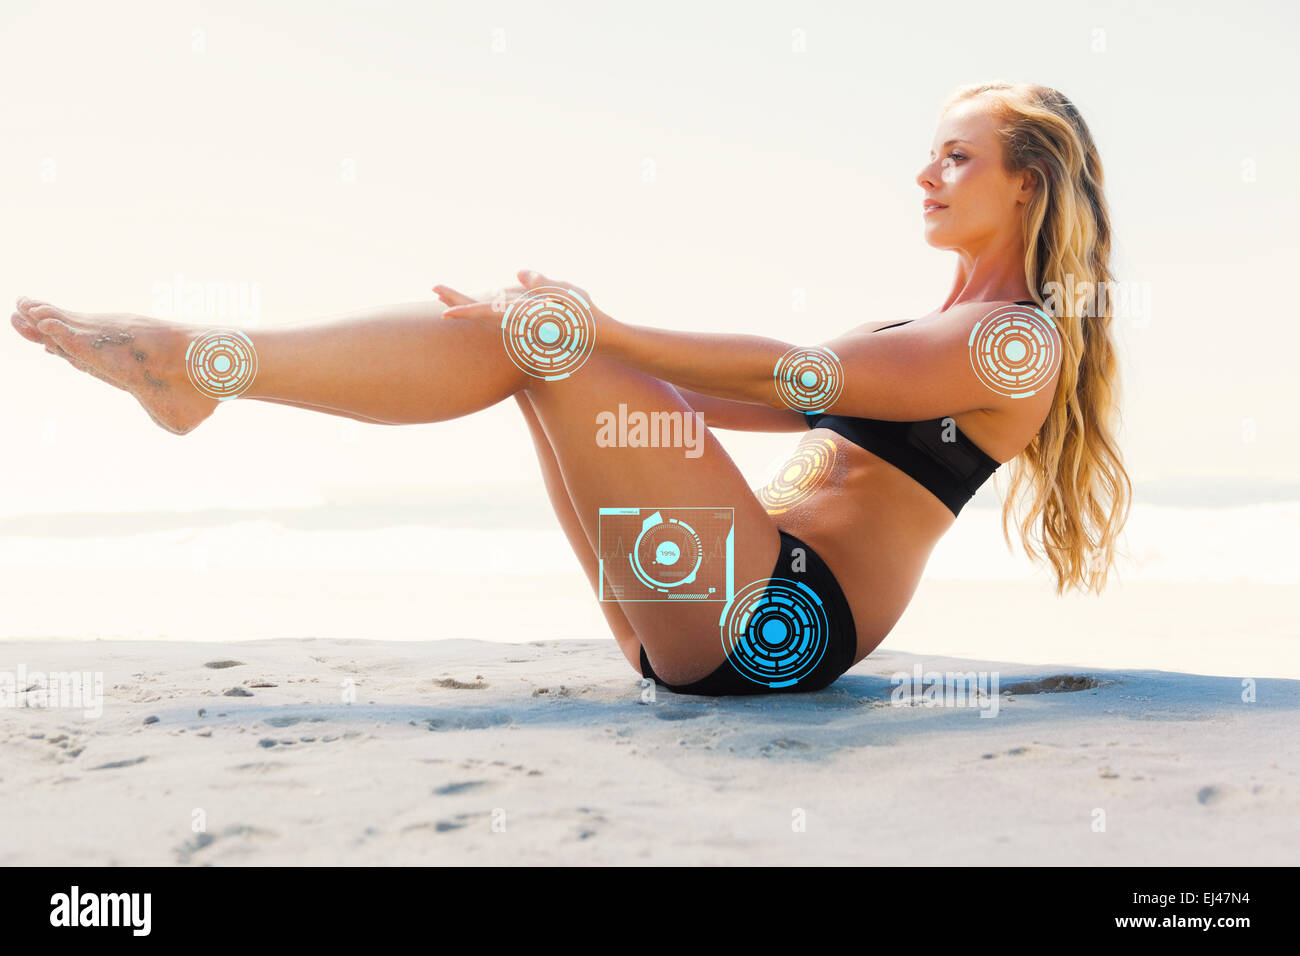 Composite image of fit blonde in core balance pilates pose on the beach - Stock Image